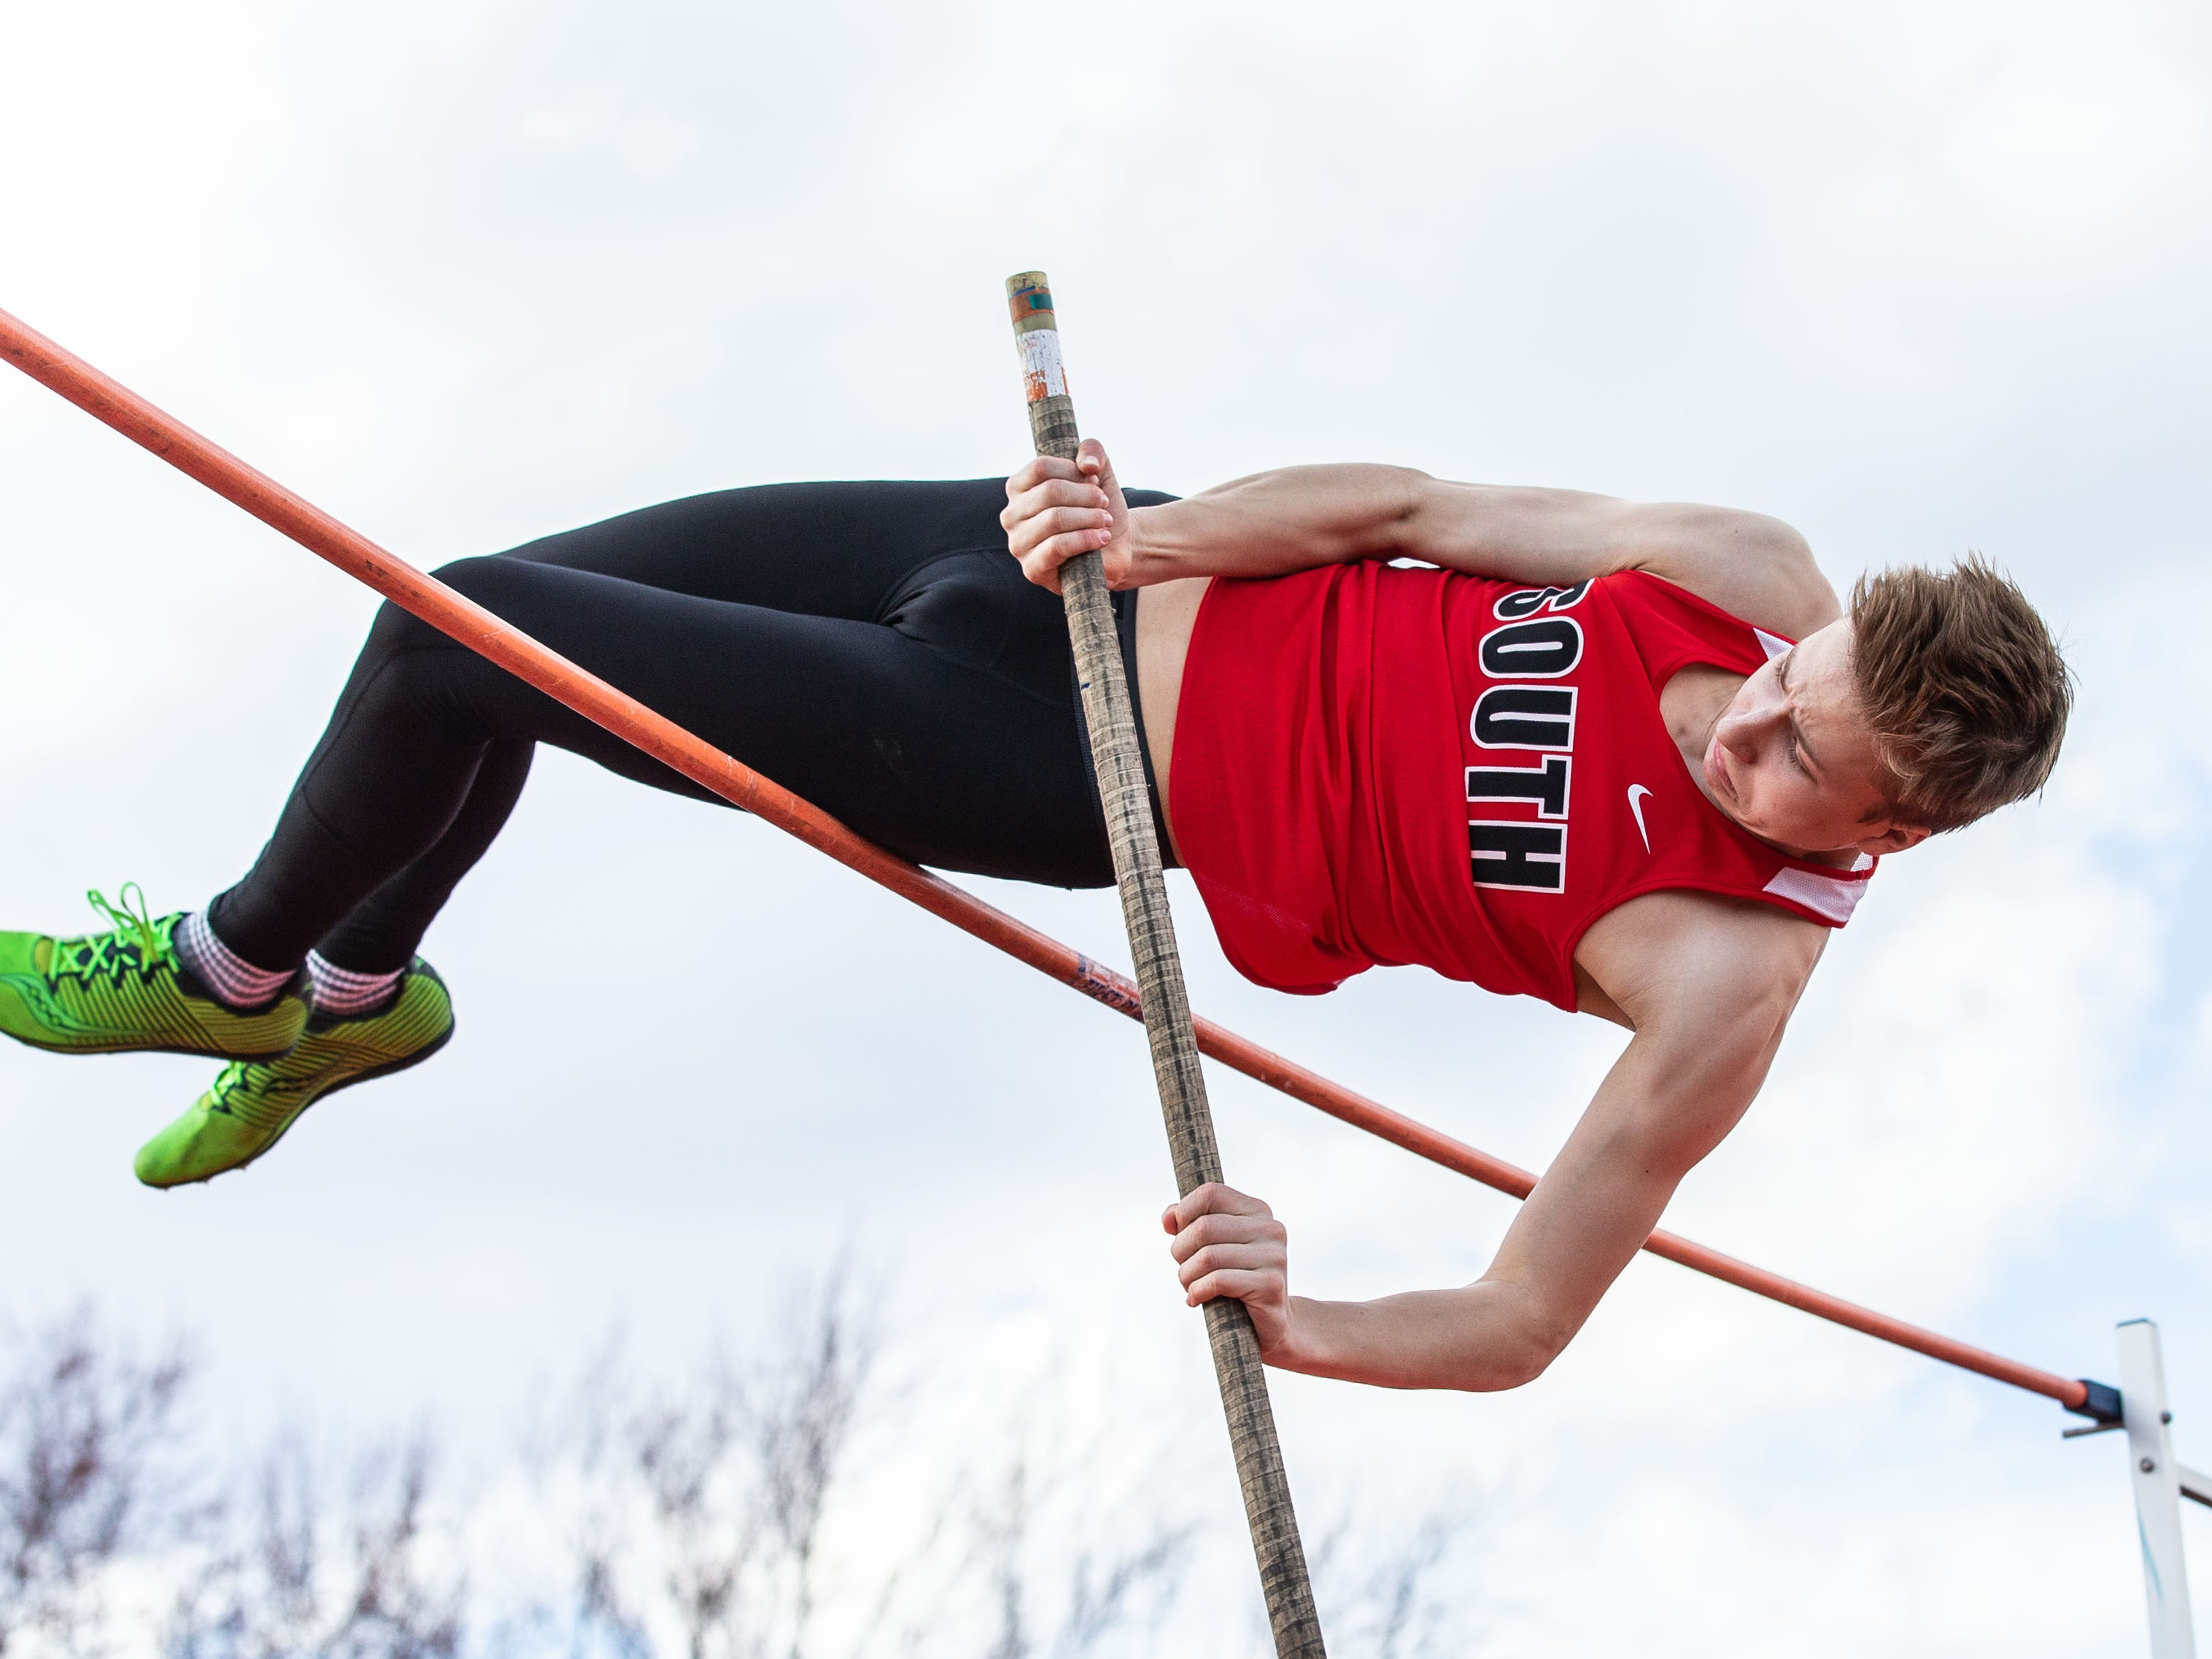 Waukesha South's Brendan Boyle competes in the pole vault during the Mike Gain 50th Annual Spartan Invitational at Brookfield East on Tuesday, April 9, 2019.